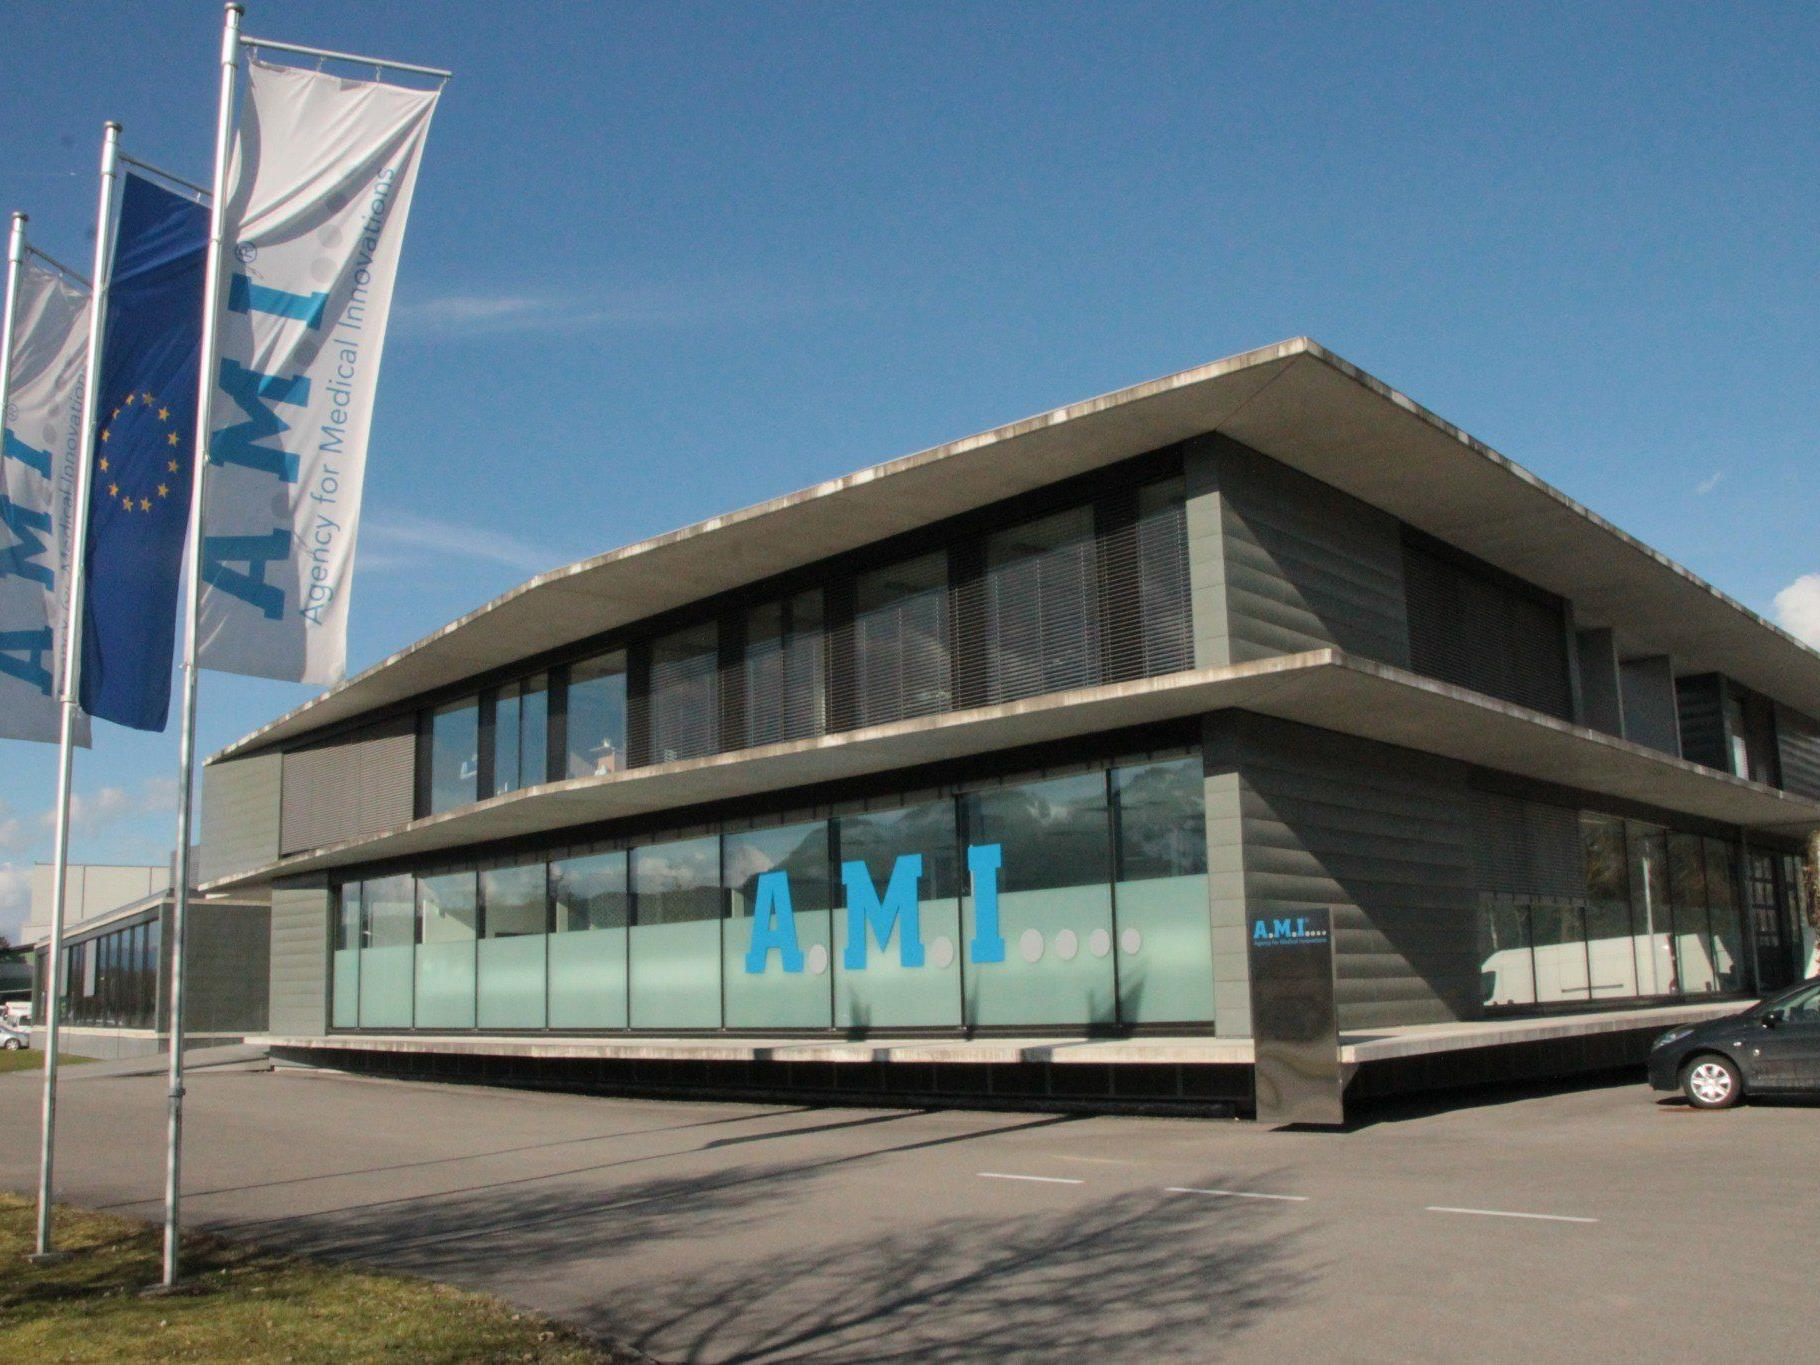 Die Firma A.M.I. (Agency for Medical Innovations) baut eine neue Produktionshalle in Gisingen.